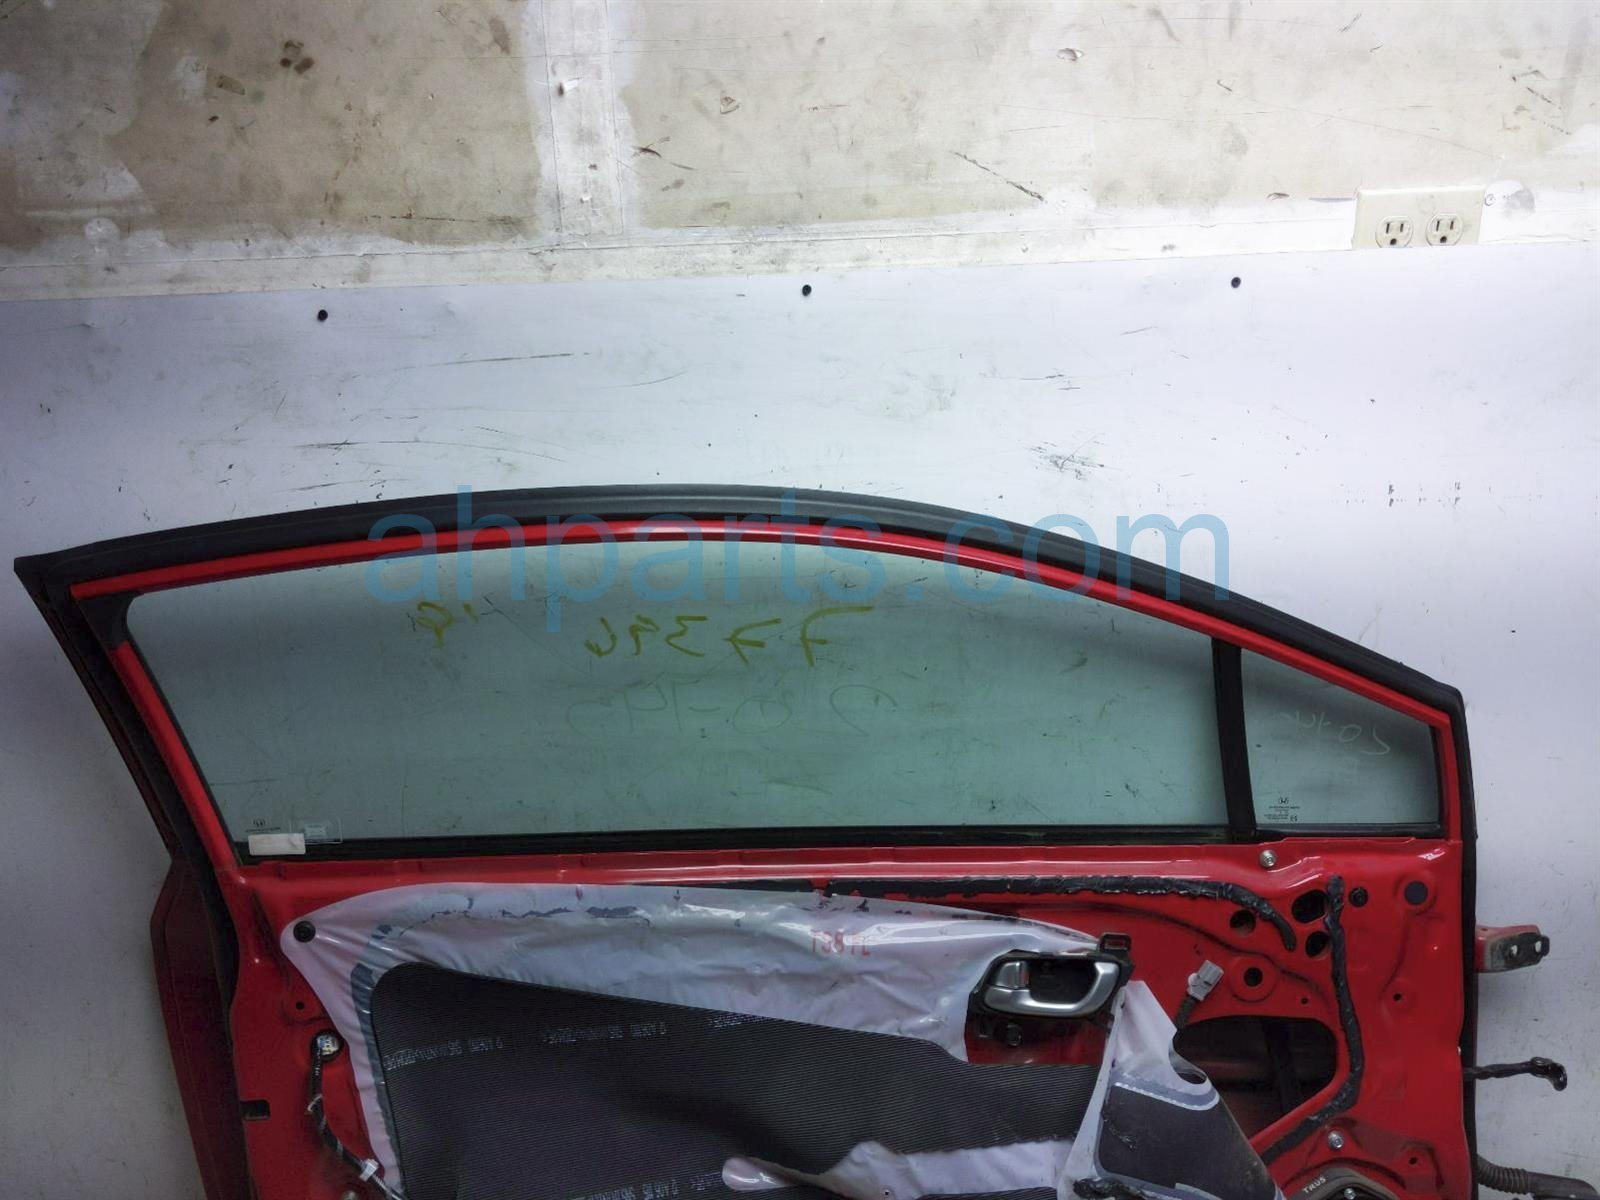 2012 Honda Civic Front Driver Door   Red   No Mirror/trim 67050 TS8 A91ZZ Replacement